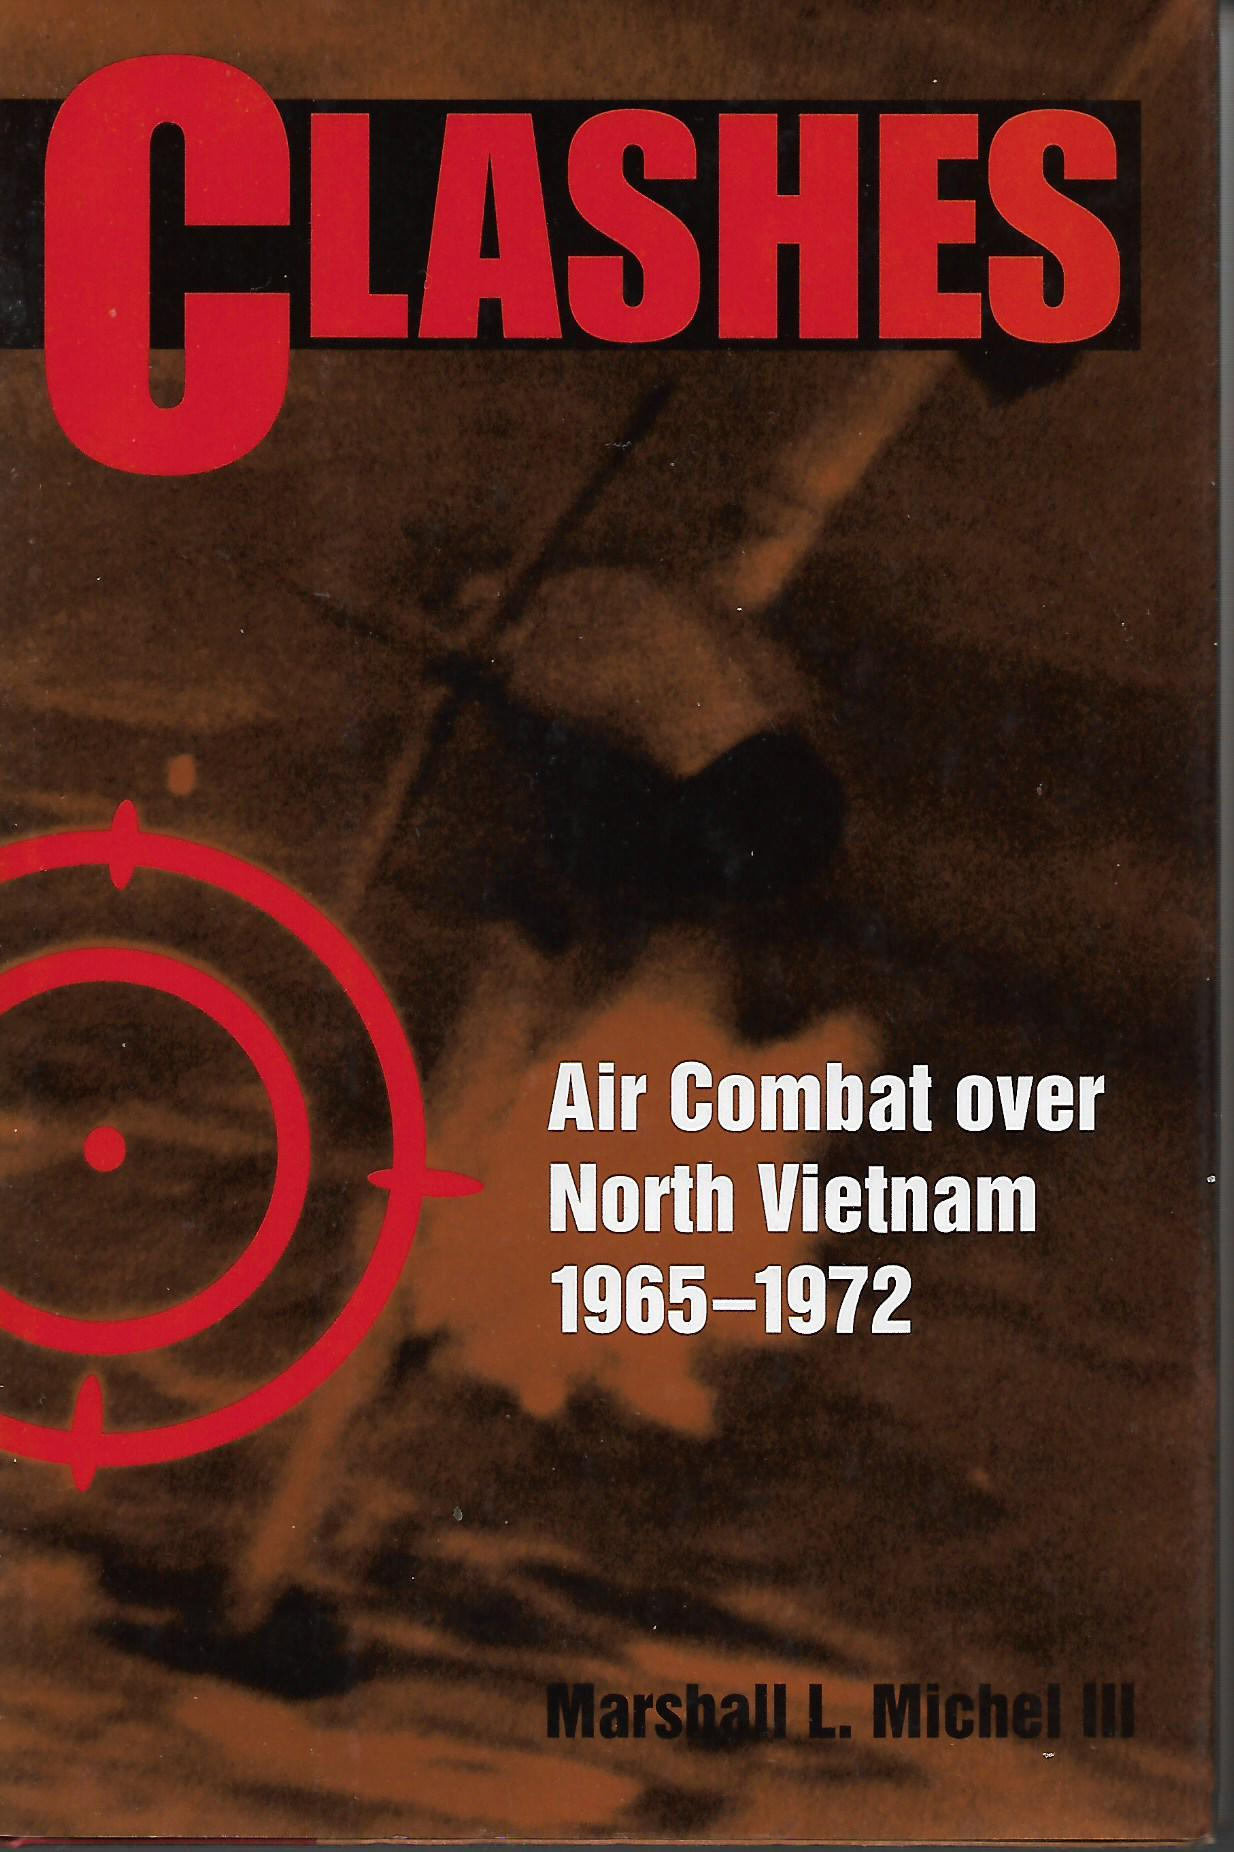 Clashes: Air Combat Over North Vietnam, 1965-1972, Marshall L. Michell III